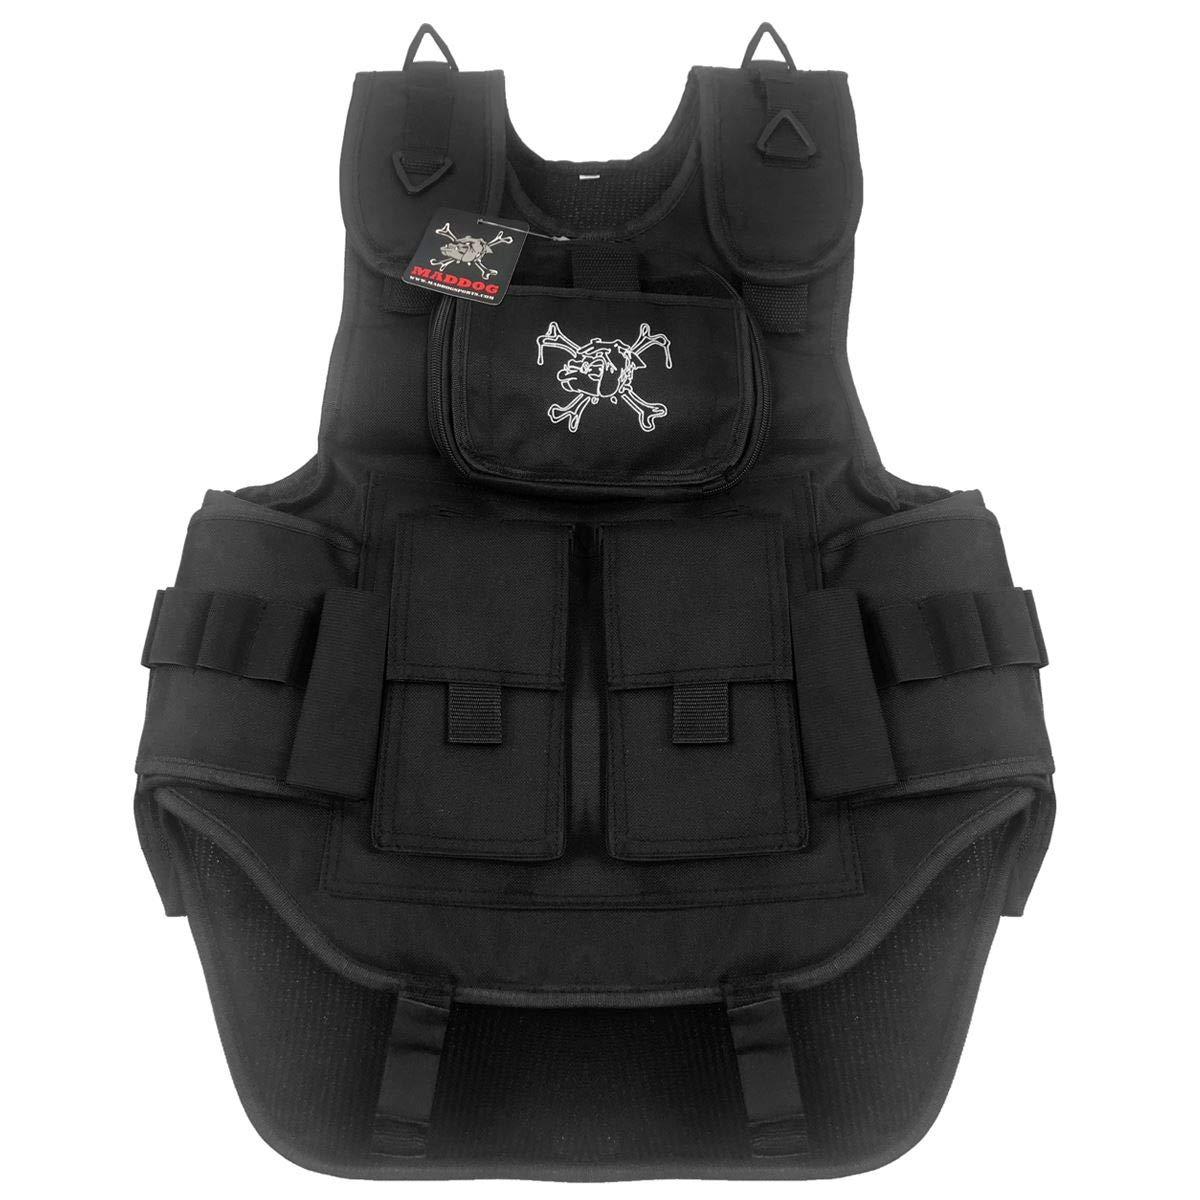 MAddog Sports Tactical Paintball Harness Vest (Stealth Black) by MAddog